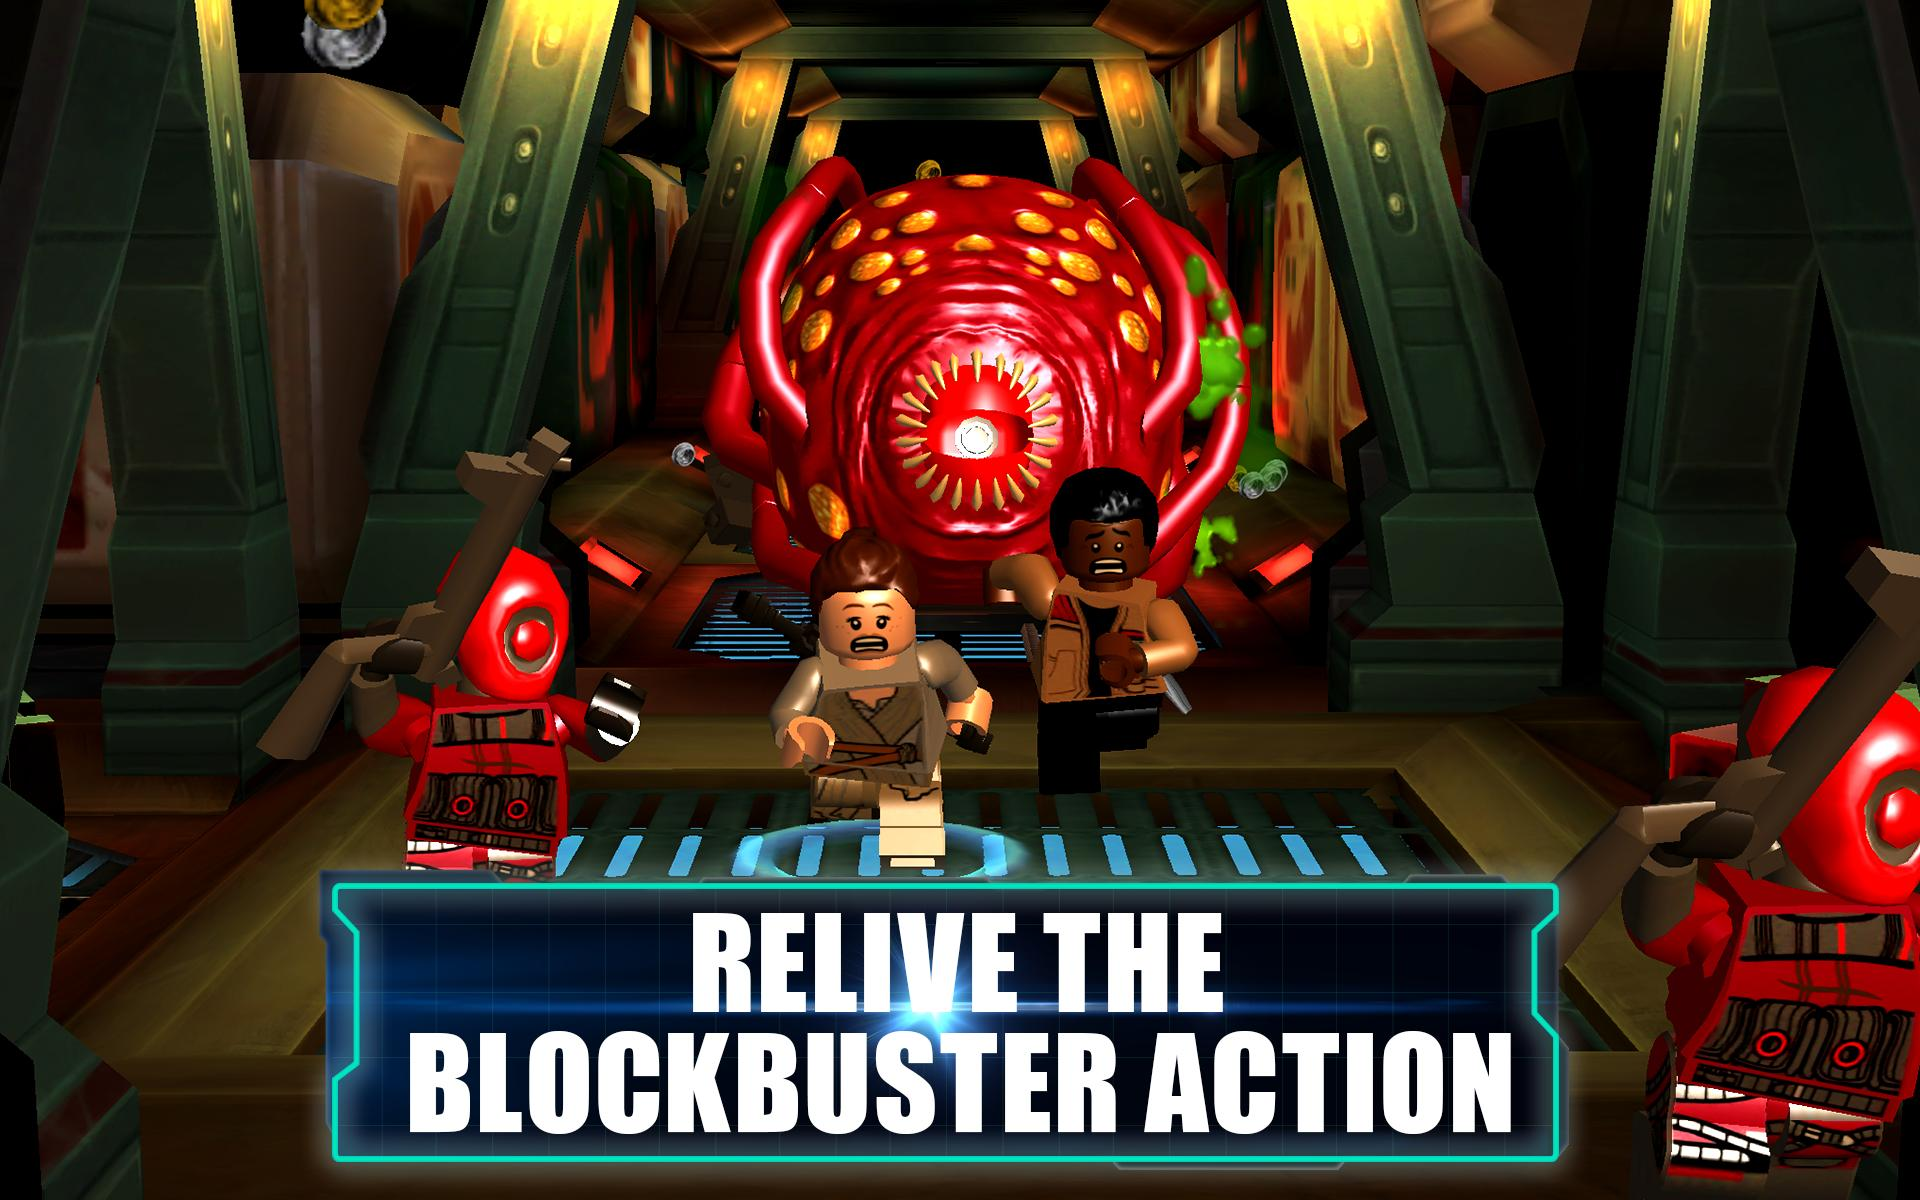 Lego Star Wars Tfa For Android Apk Download